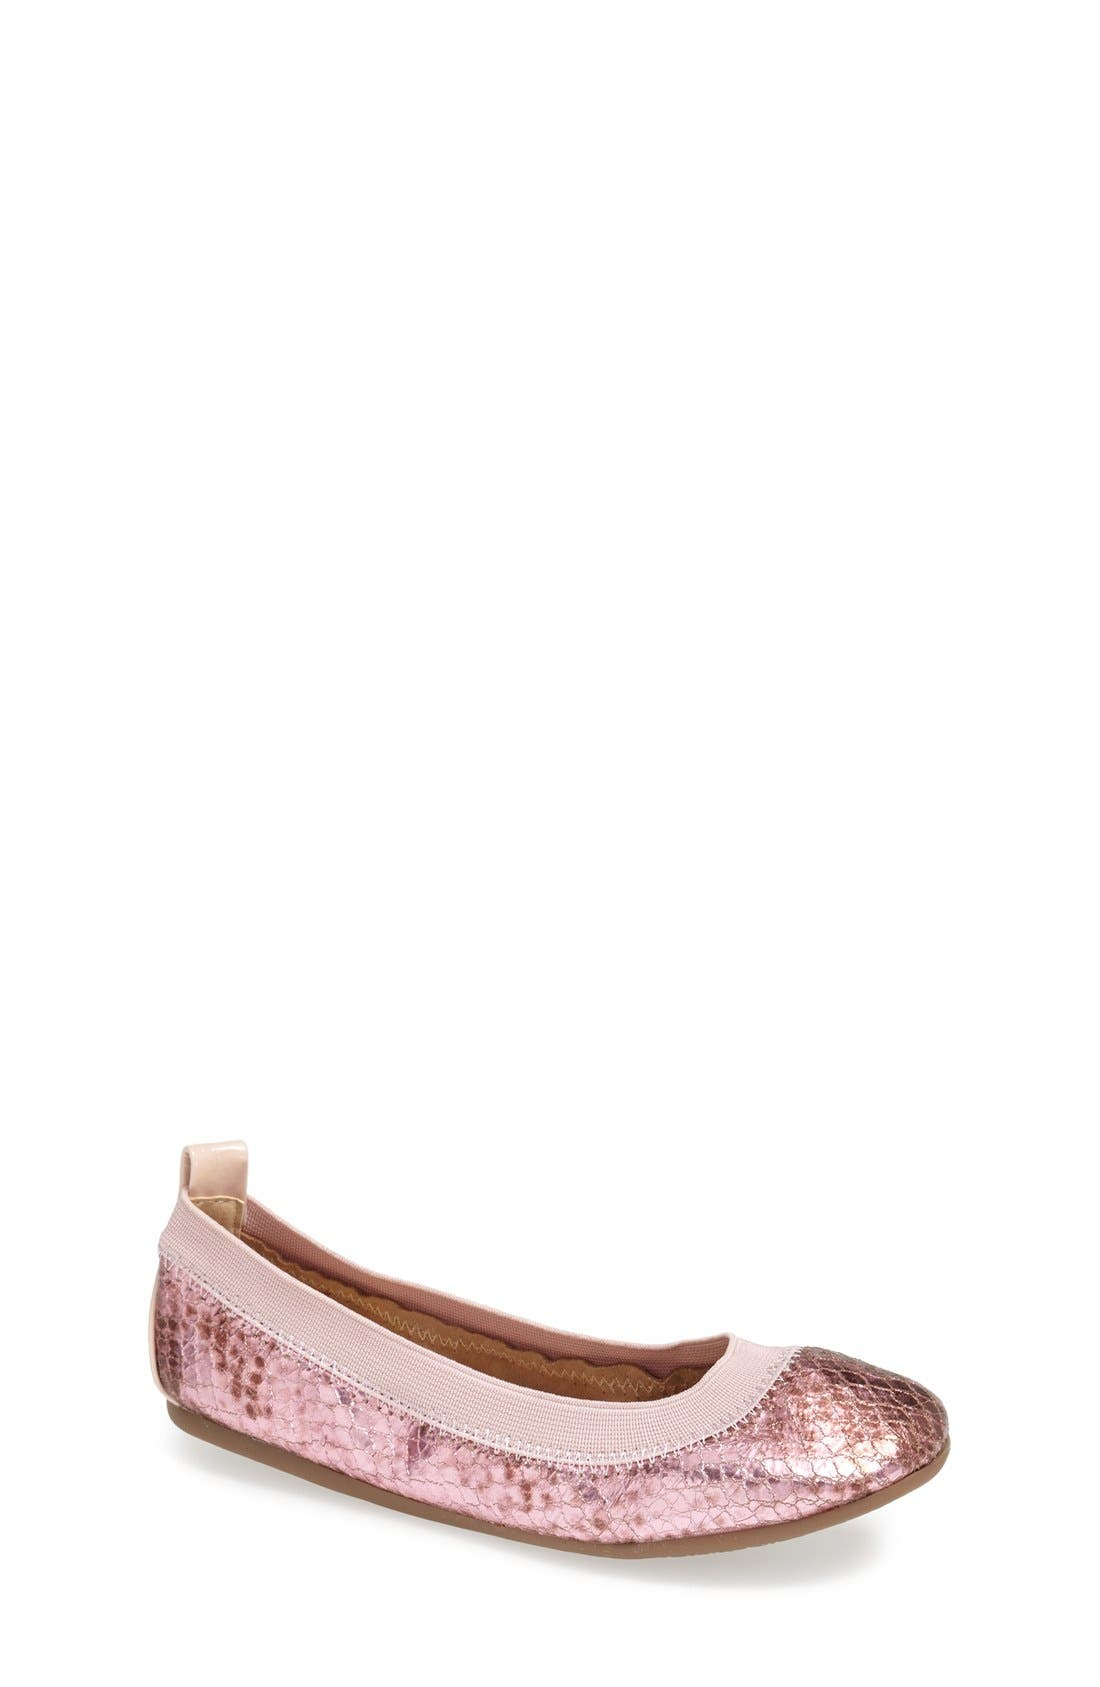 Main Image - Yosi Samra Python Embossed Metallic Leather Flat (Toddler, Little Kid & Big Kid)